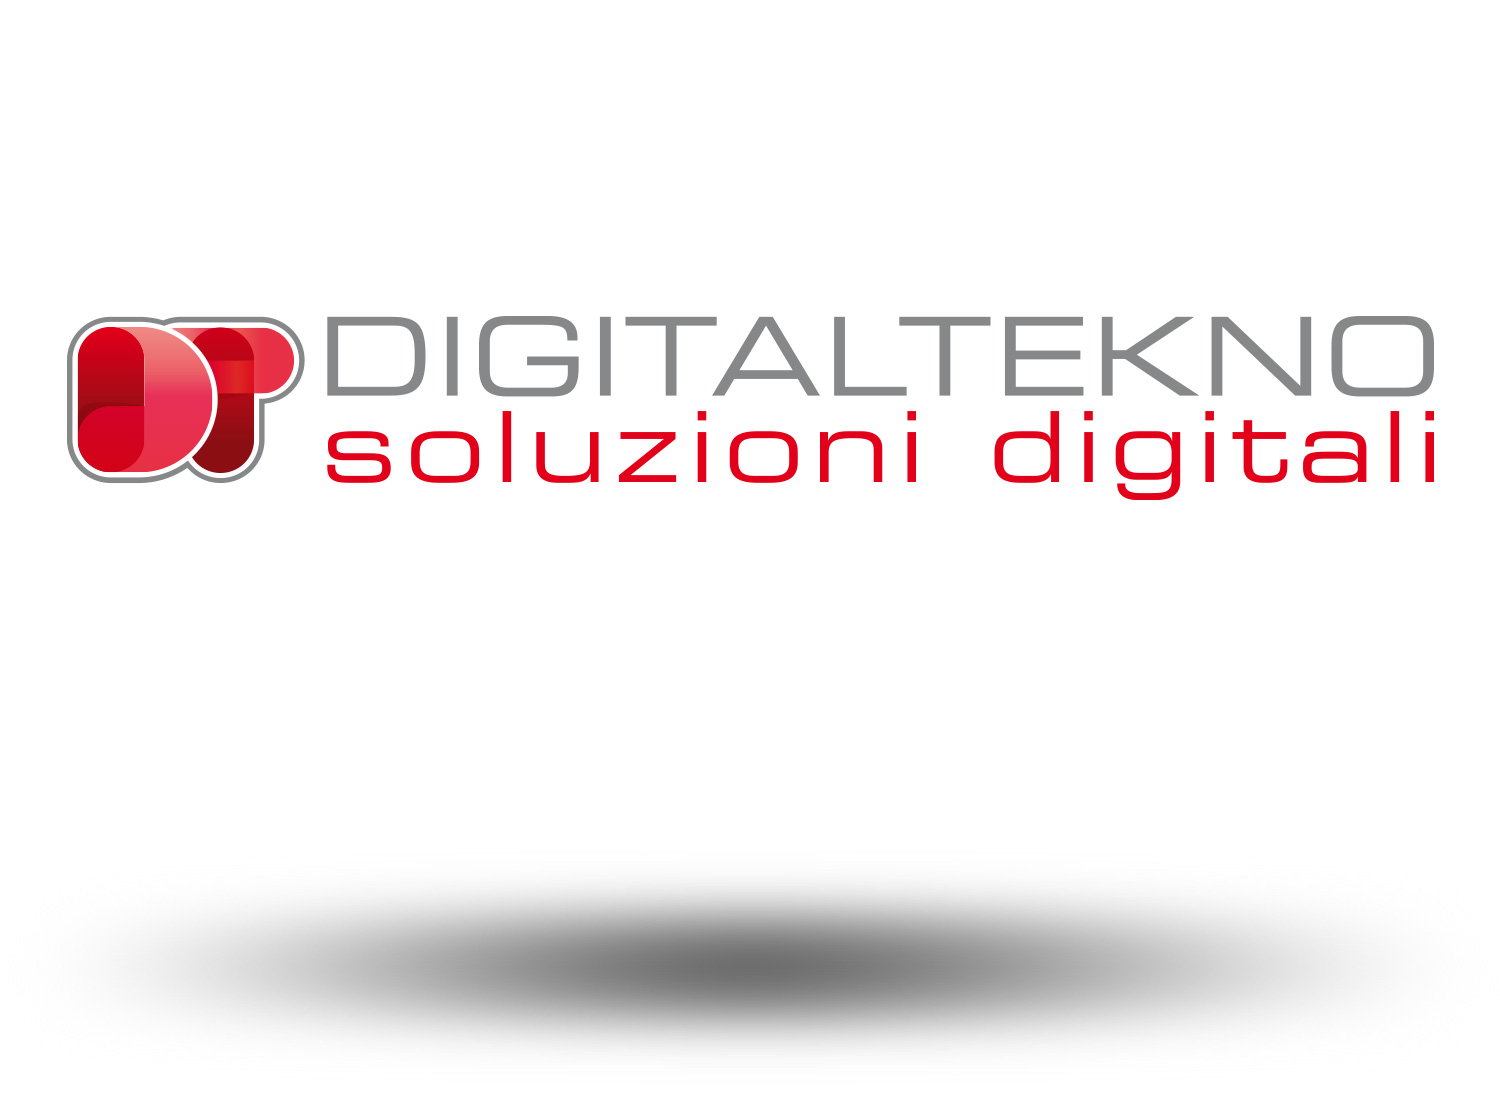 DIGITALTEKNO